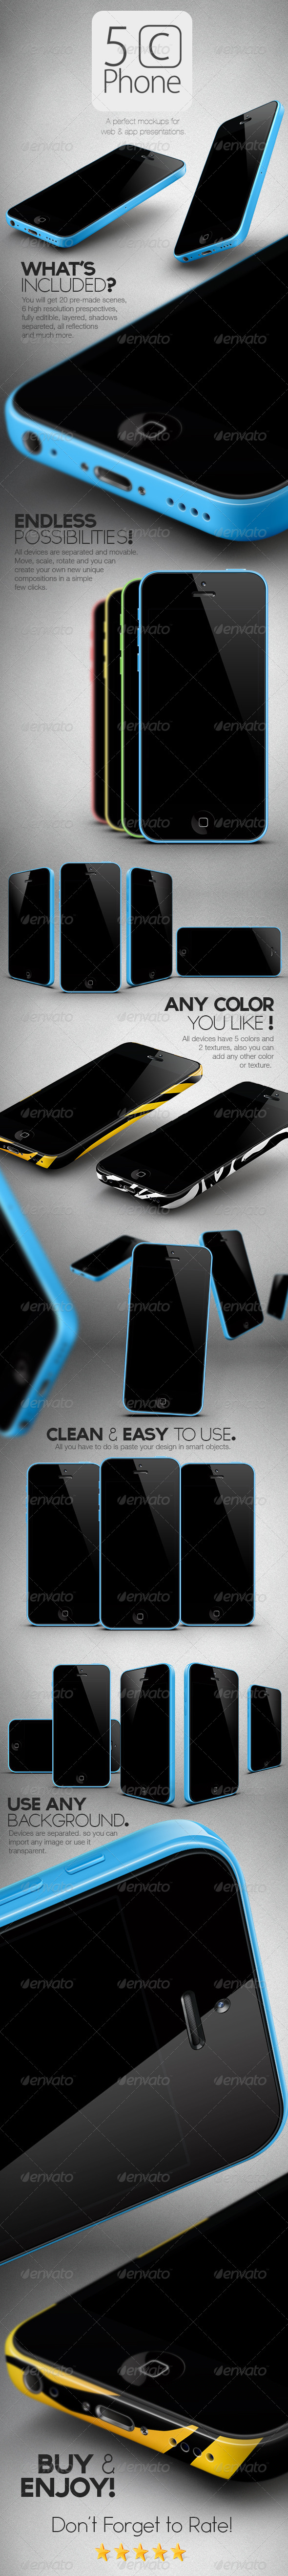 GraphicRiver New 5C Phone Mock Ups Pack 5875561